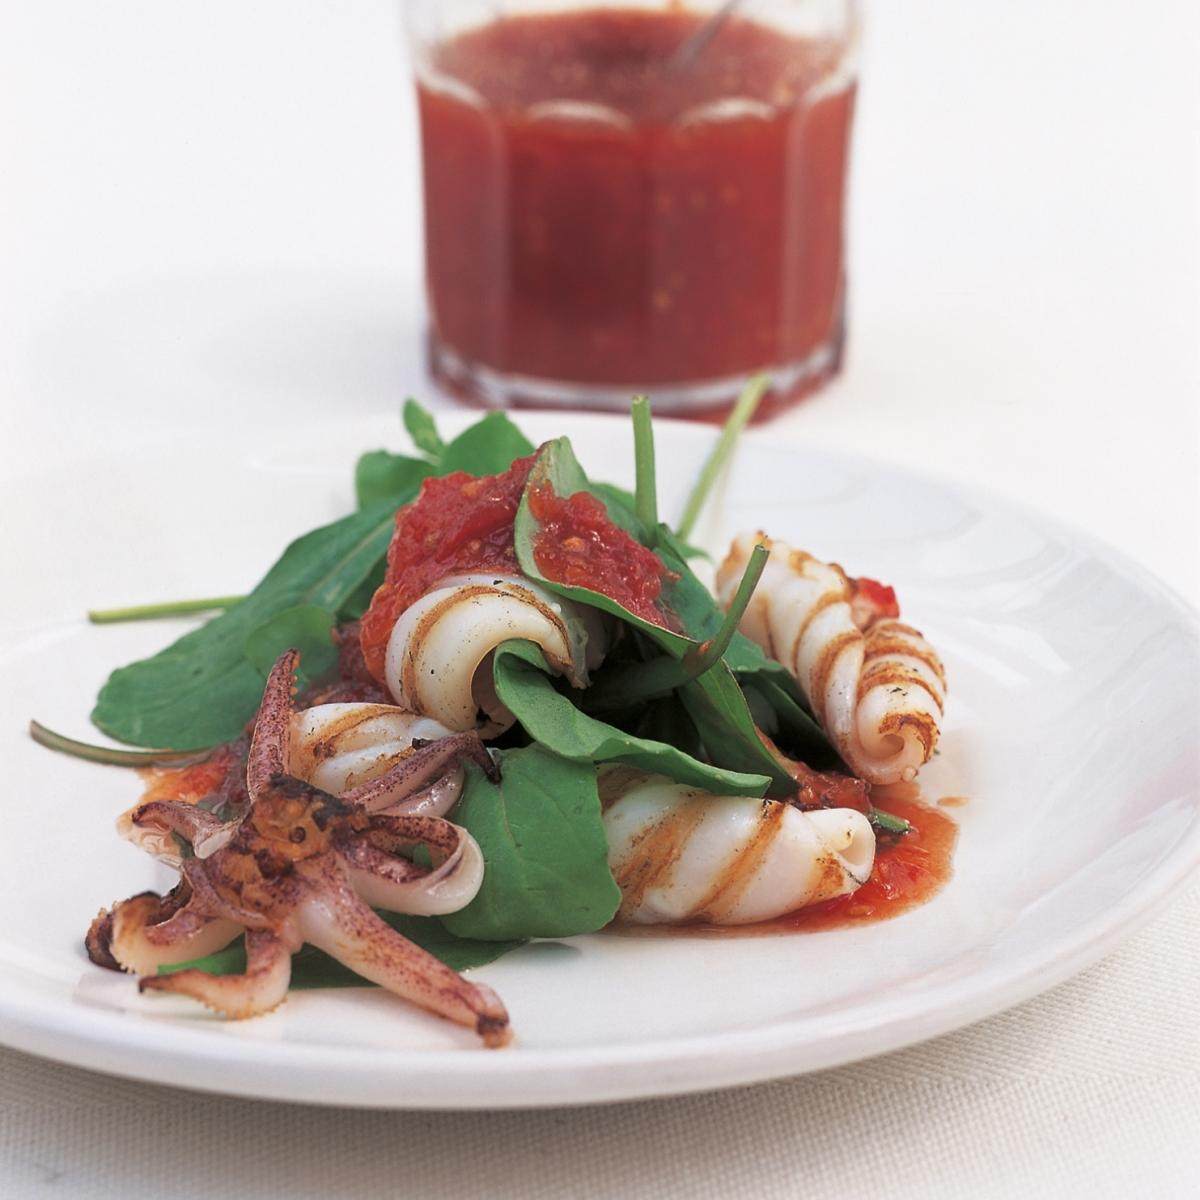 A picture of Delia's Char-grilled Squid with Chilli Jam recipe